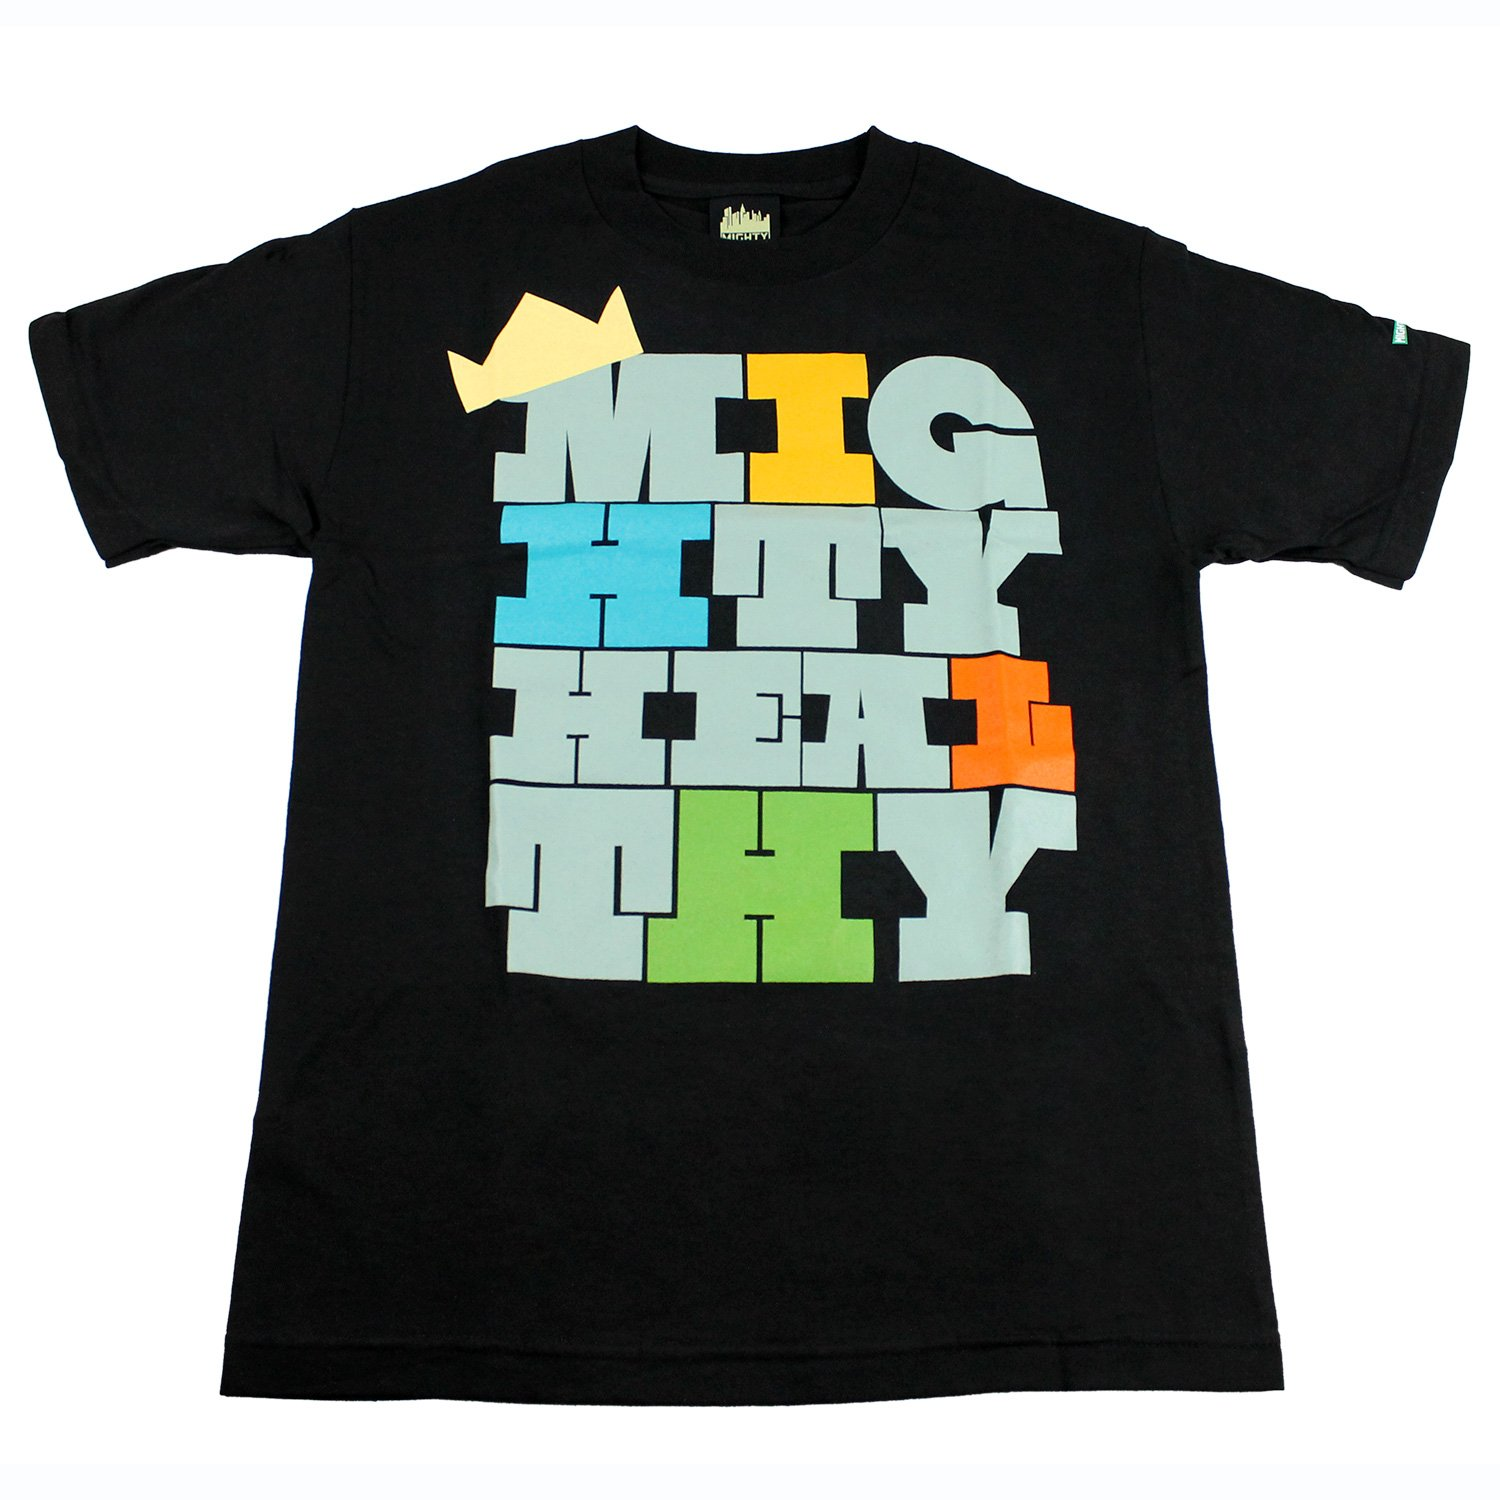 MIGHTY HEALTHY T-Shirt HIGH AND MIGHTY Size S